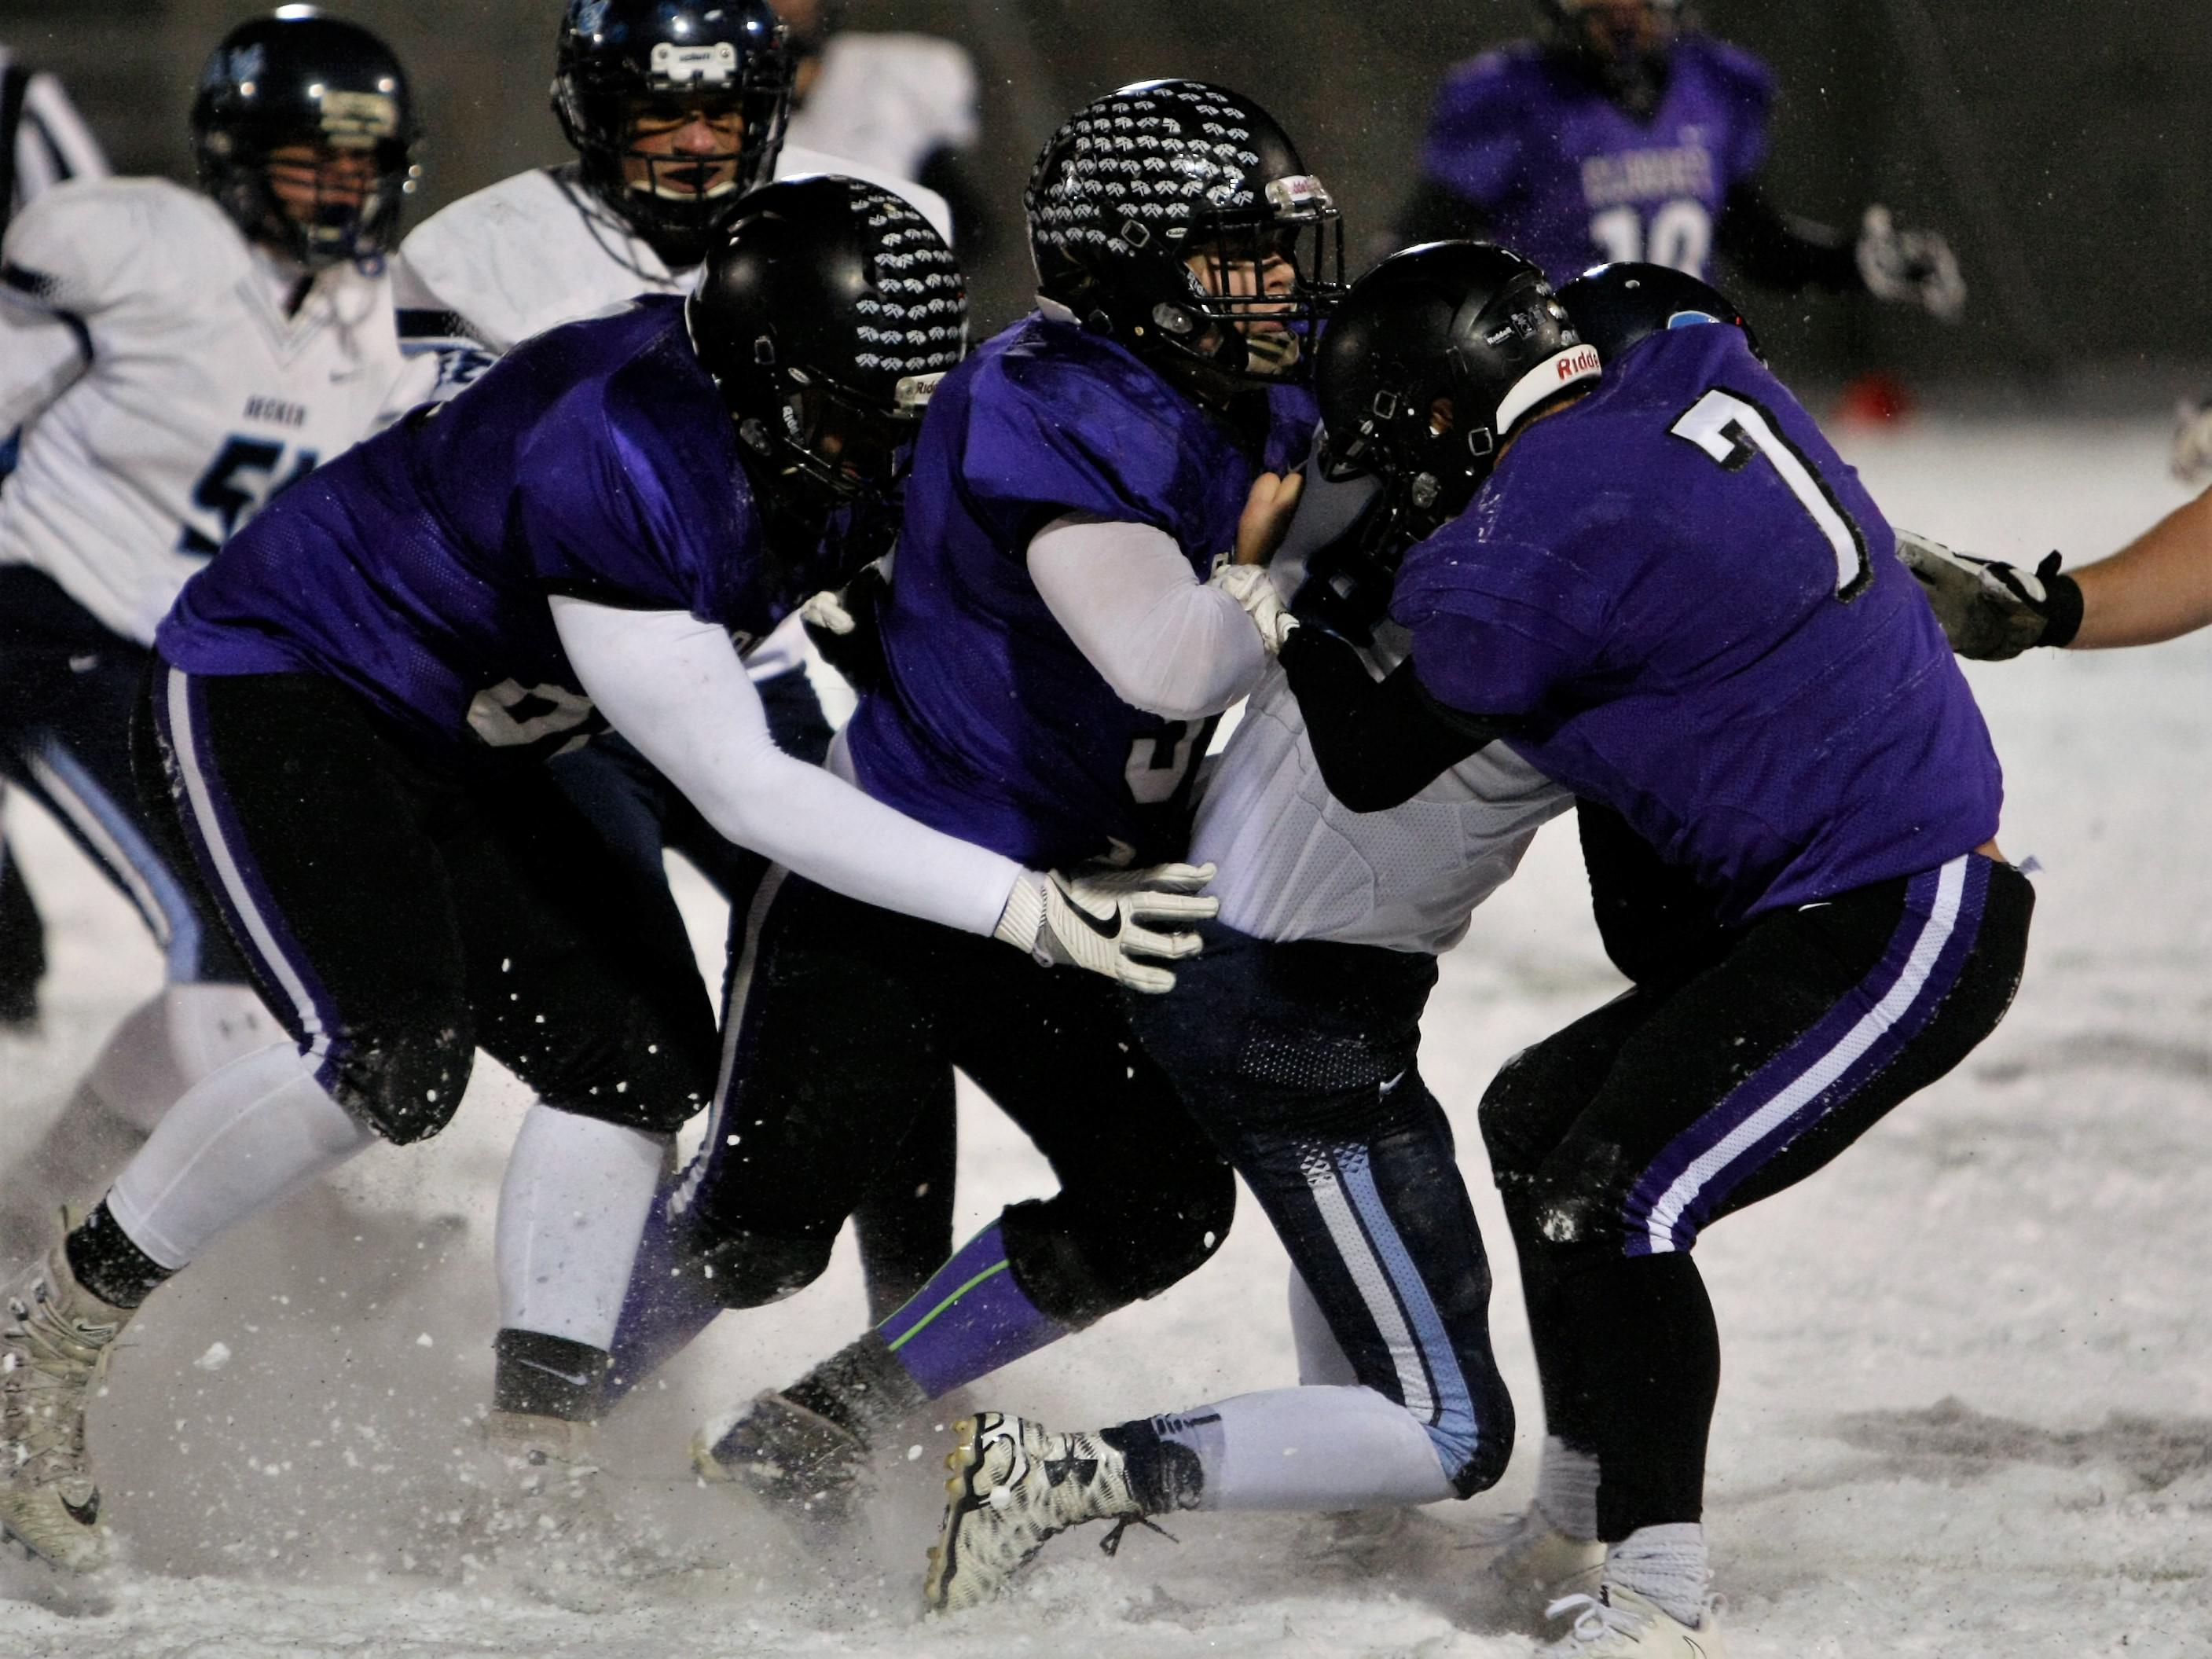 A bevy of Cloquet defenders drag a Bulldog down in their 36-21 Class 4A state quarterfinal victory at St. Cloud State University Friday. Photo by Taylor Lunemann, SportsEngine